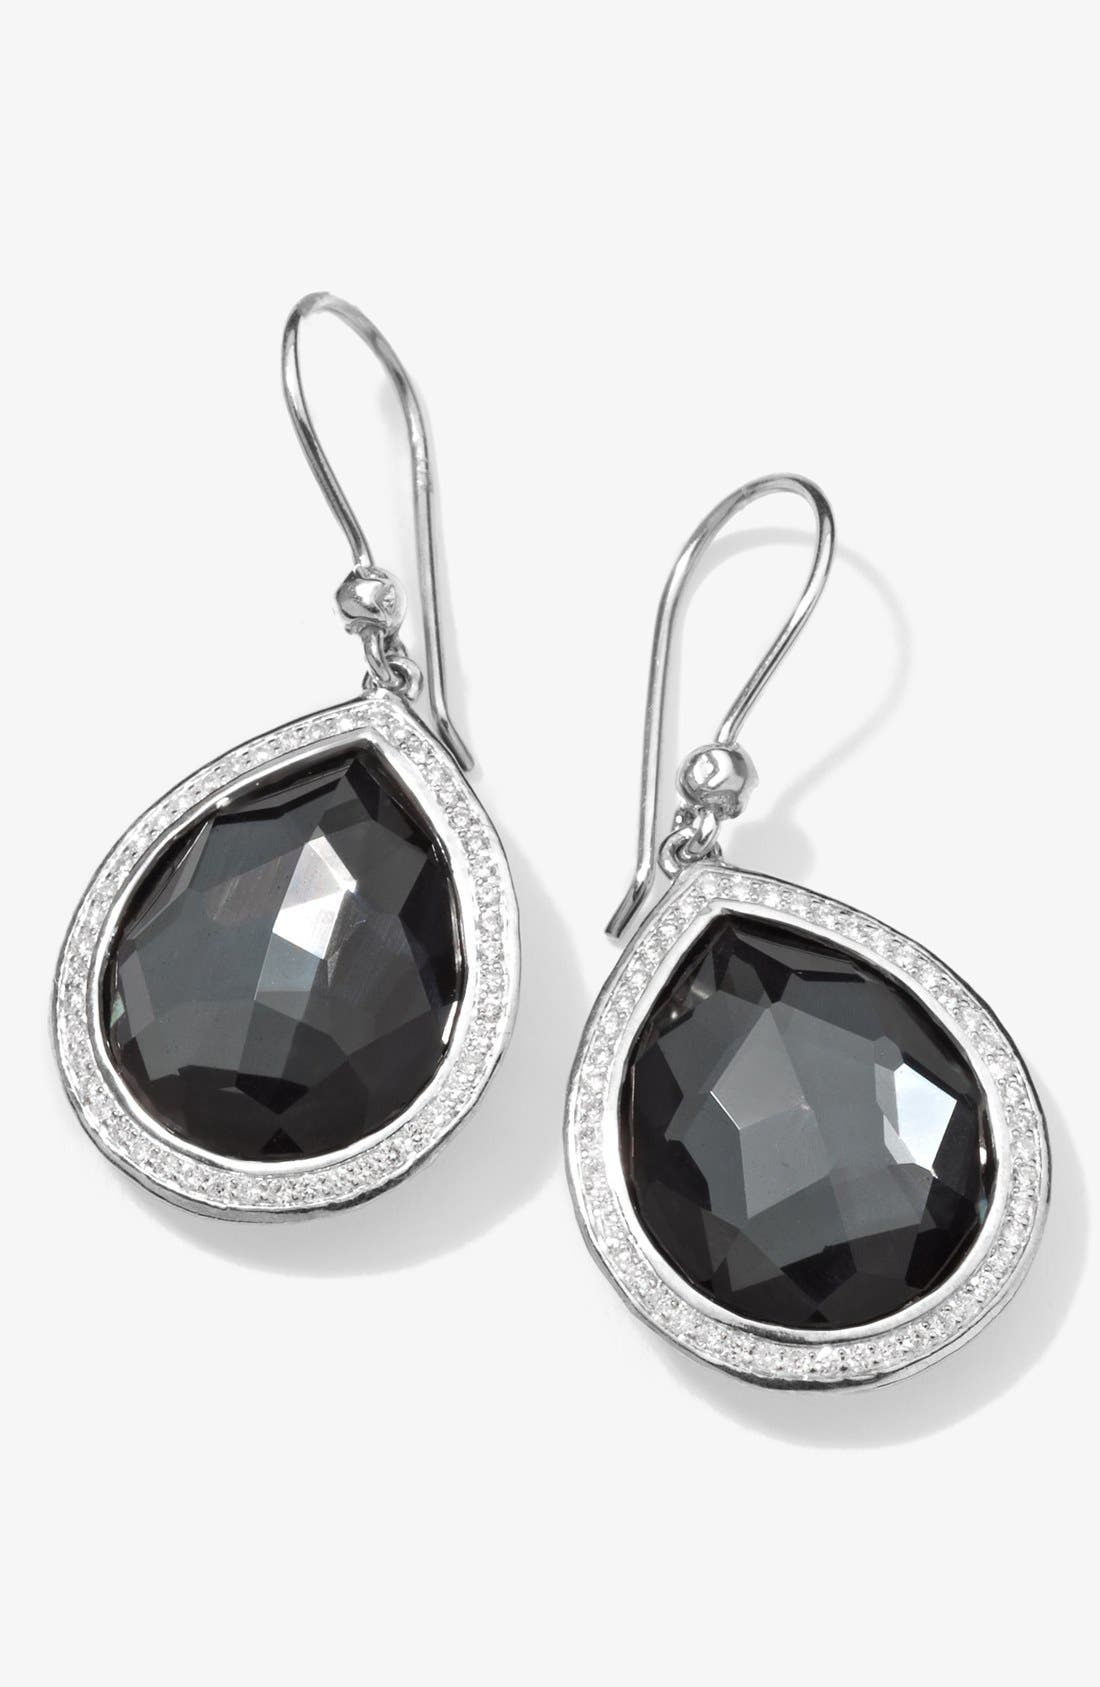 Main Image - Ippolita 'Stella' Large Teardrop Earrings